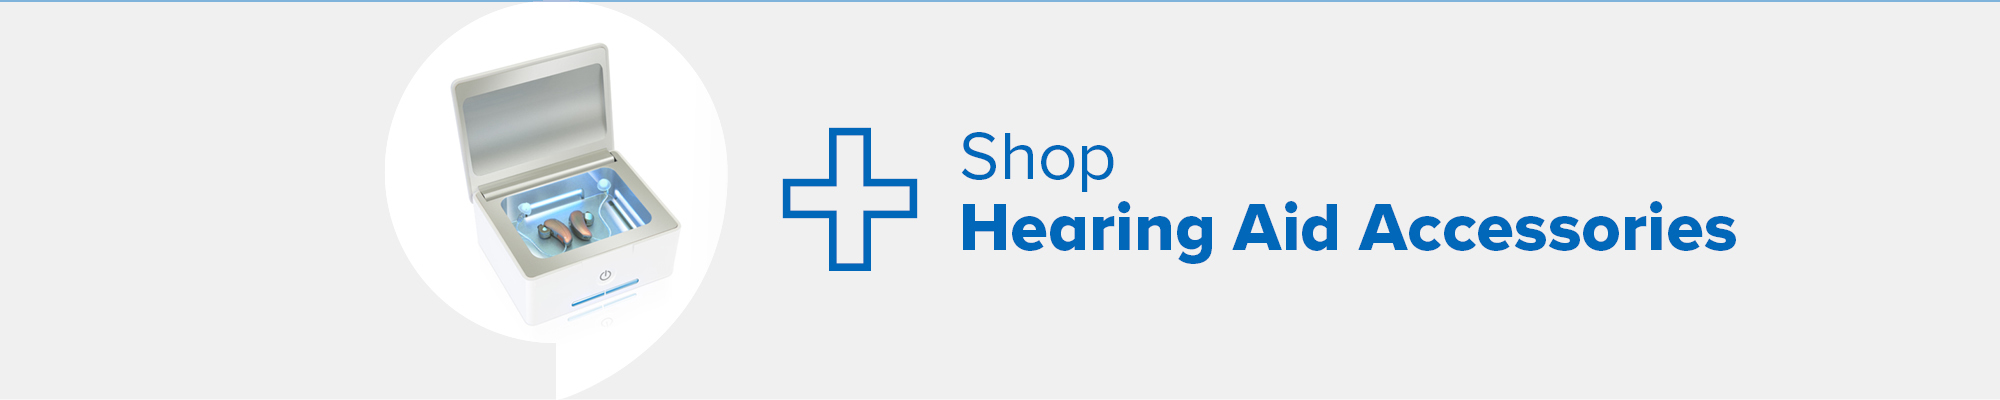 hl-shop-category-hearing-aid-accessories